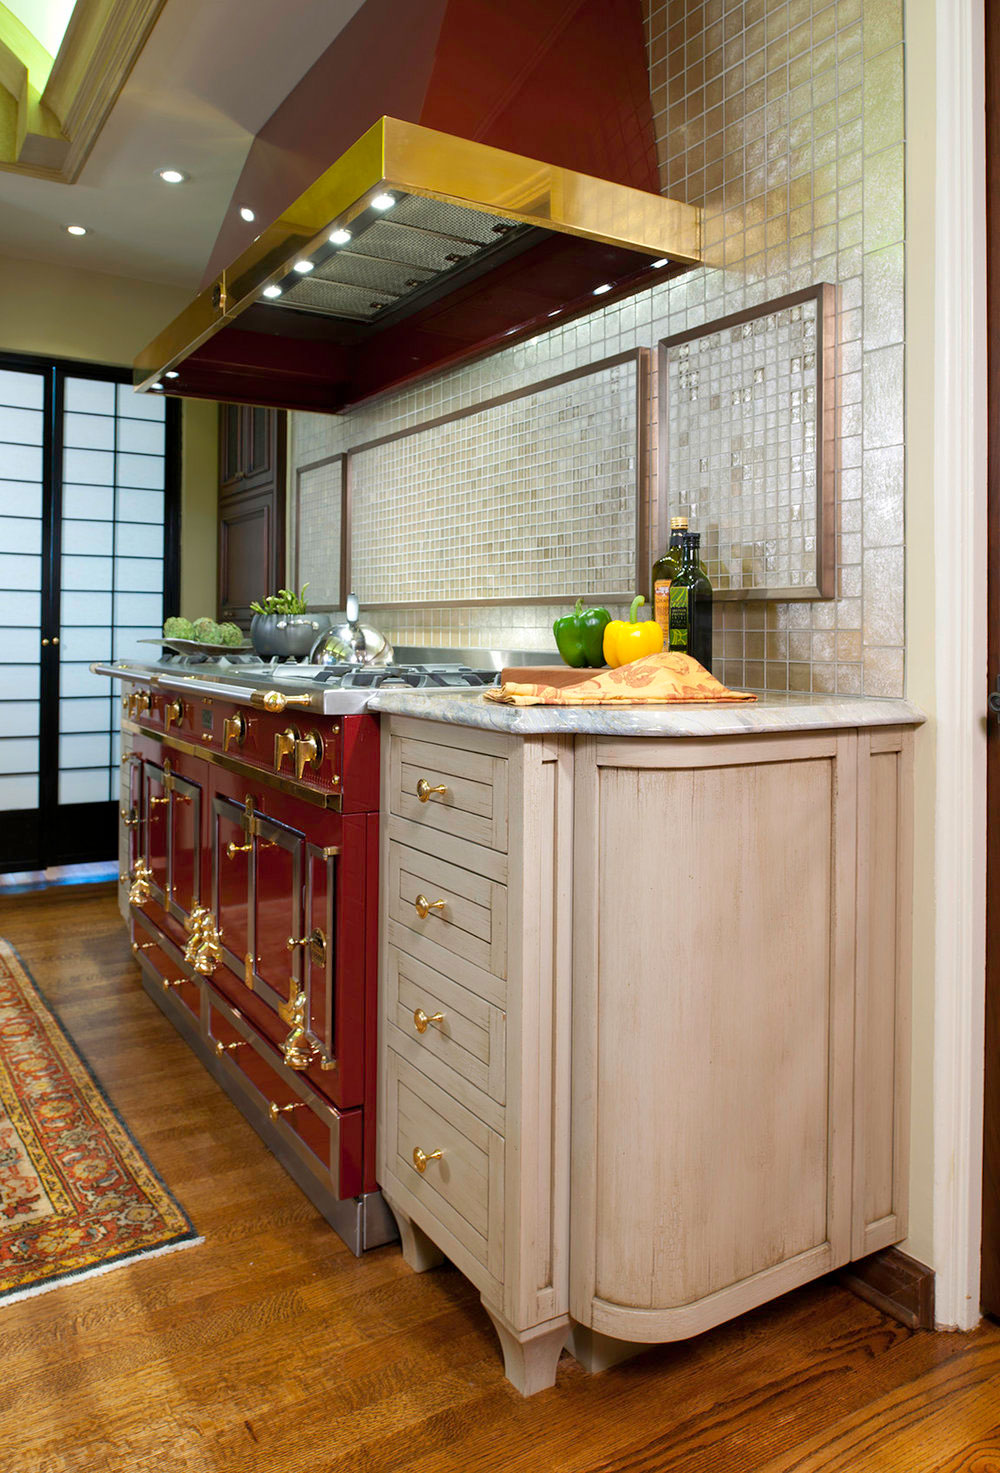 kitchen_bath_Concepts_pittsburgh_traditional_home5_5.jpg